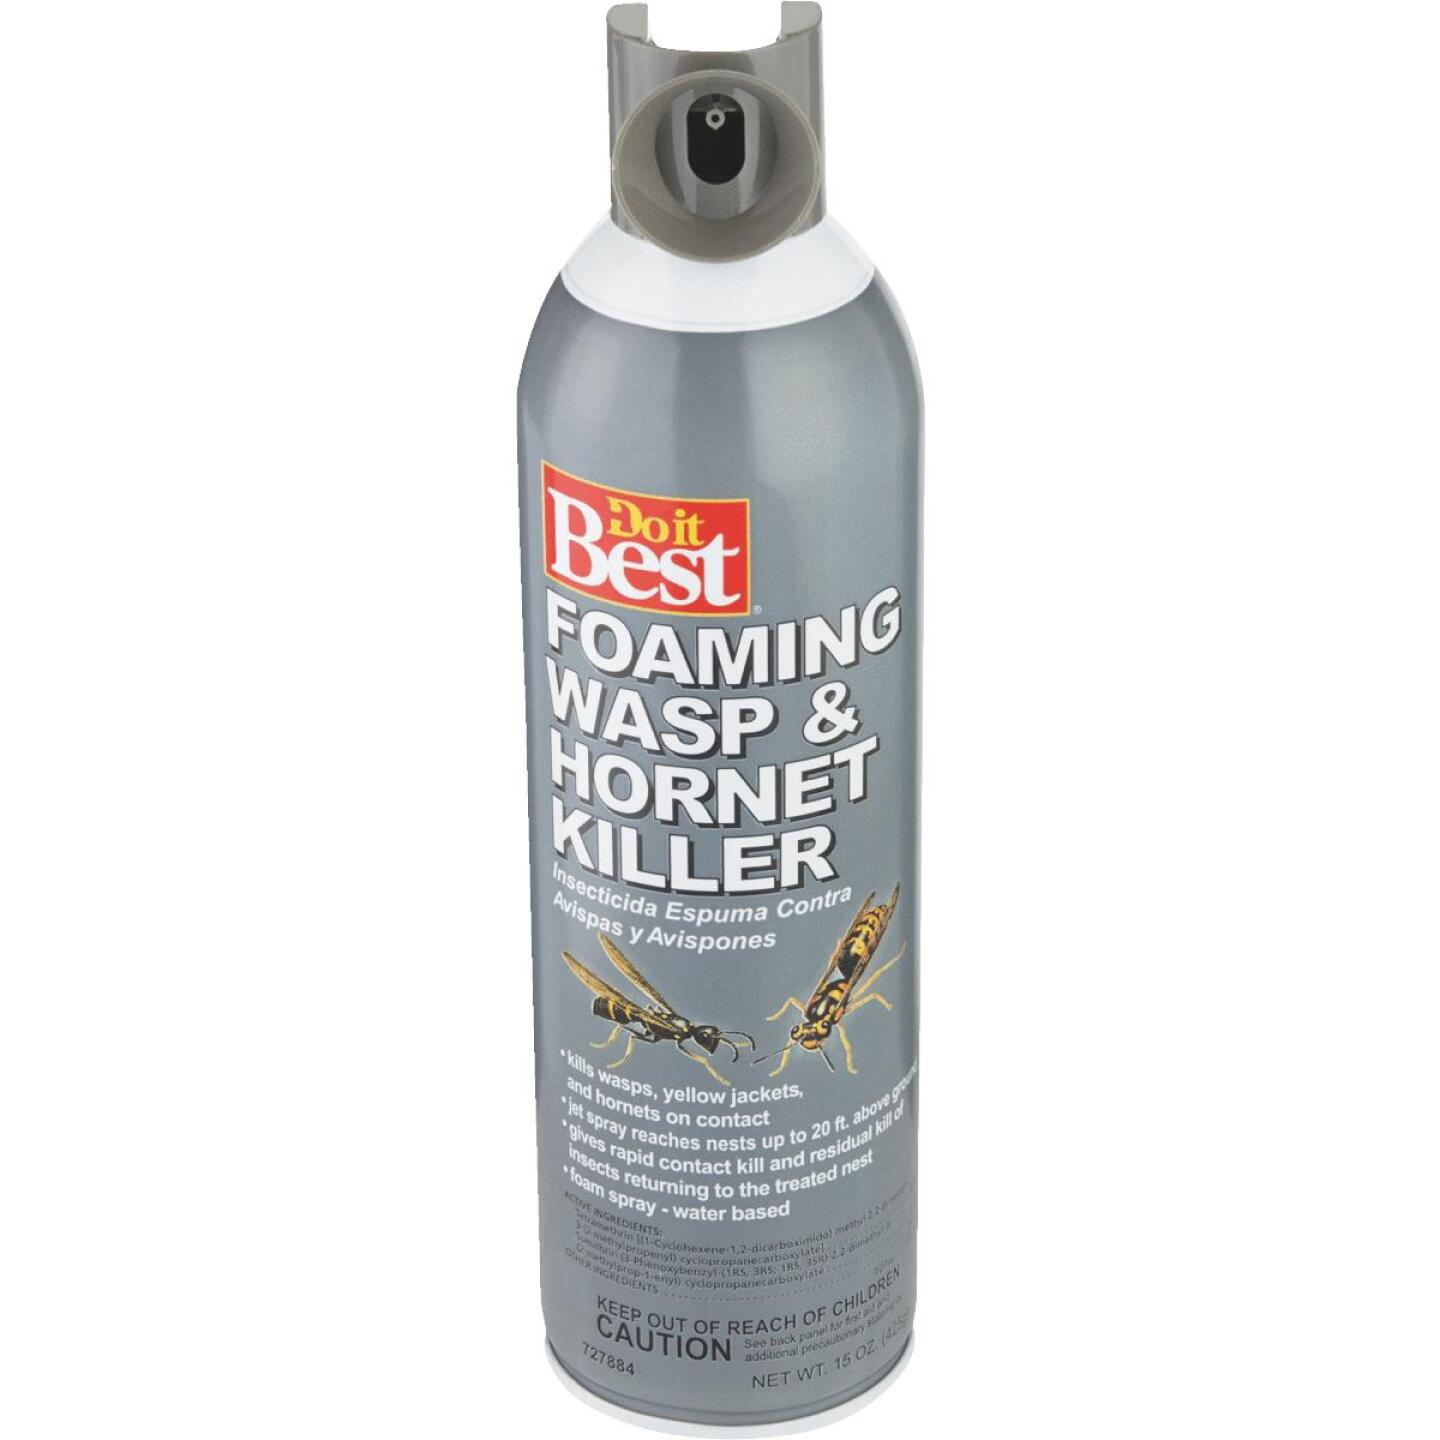 Do it Best 17.5 Oz. Foaming Aerosol Spray Wasp & Hornet Killer Image 3